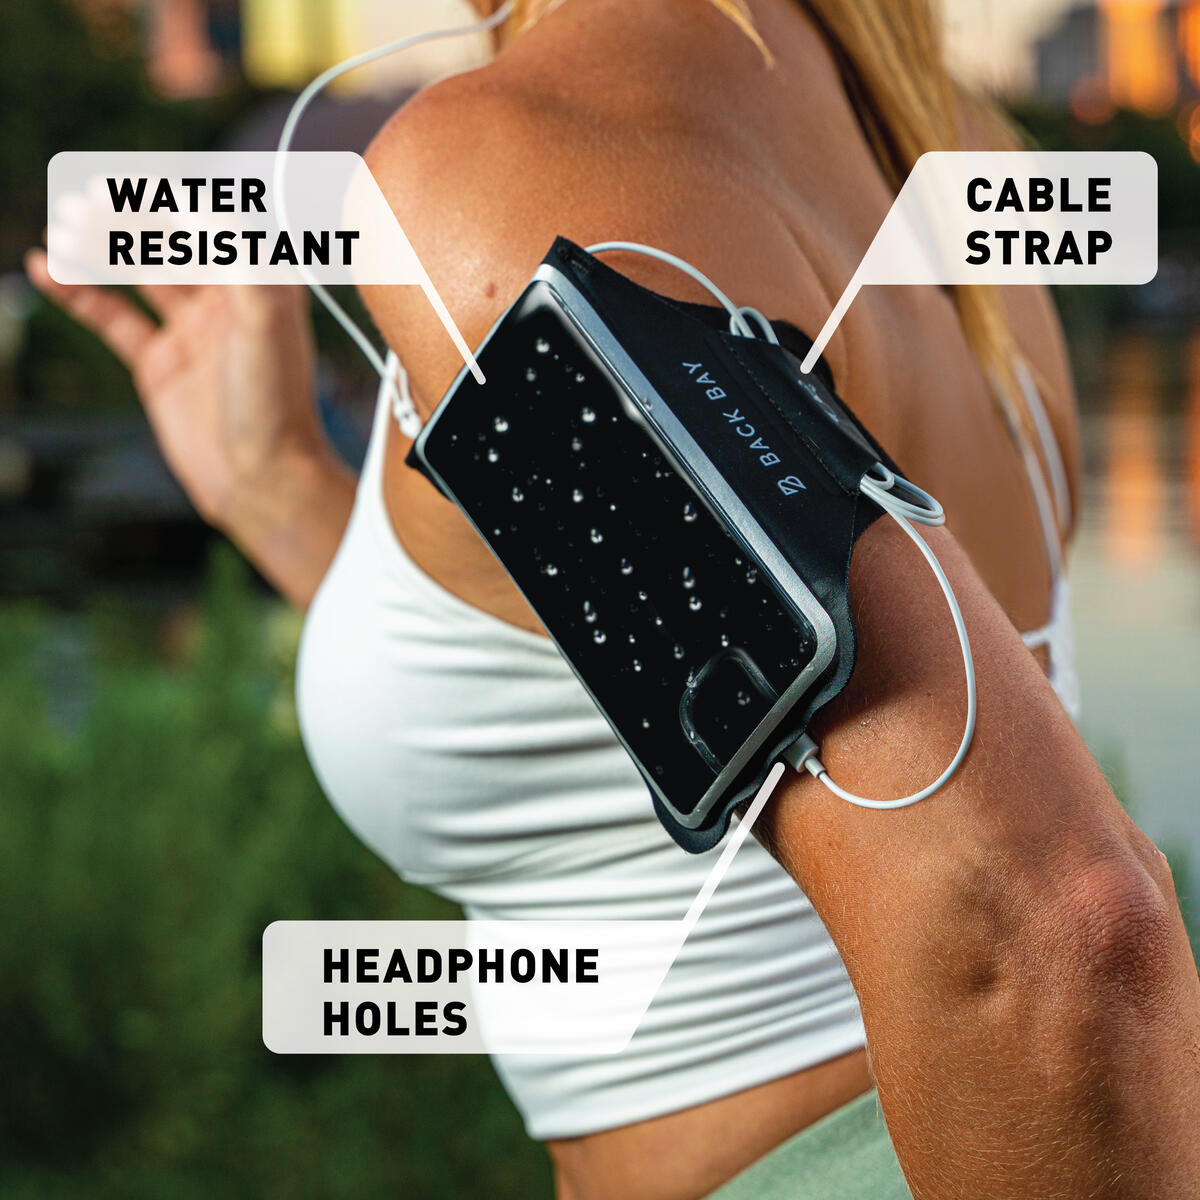 No-Slip Running Armband for Cellphones (Fits iPhone 11 Pro/11/XS/X/8, Galaxy S10/S9/S8 - All Regular Phone Sizes)